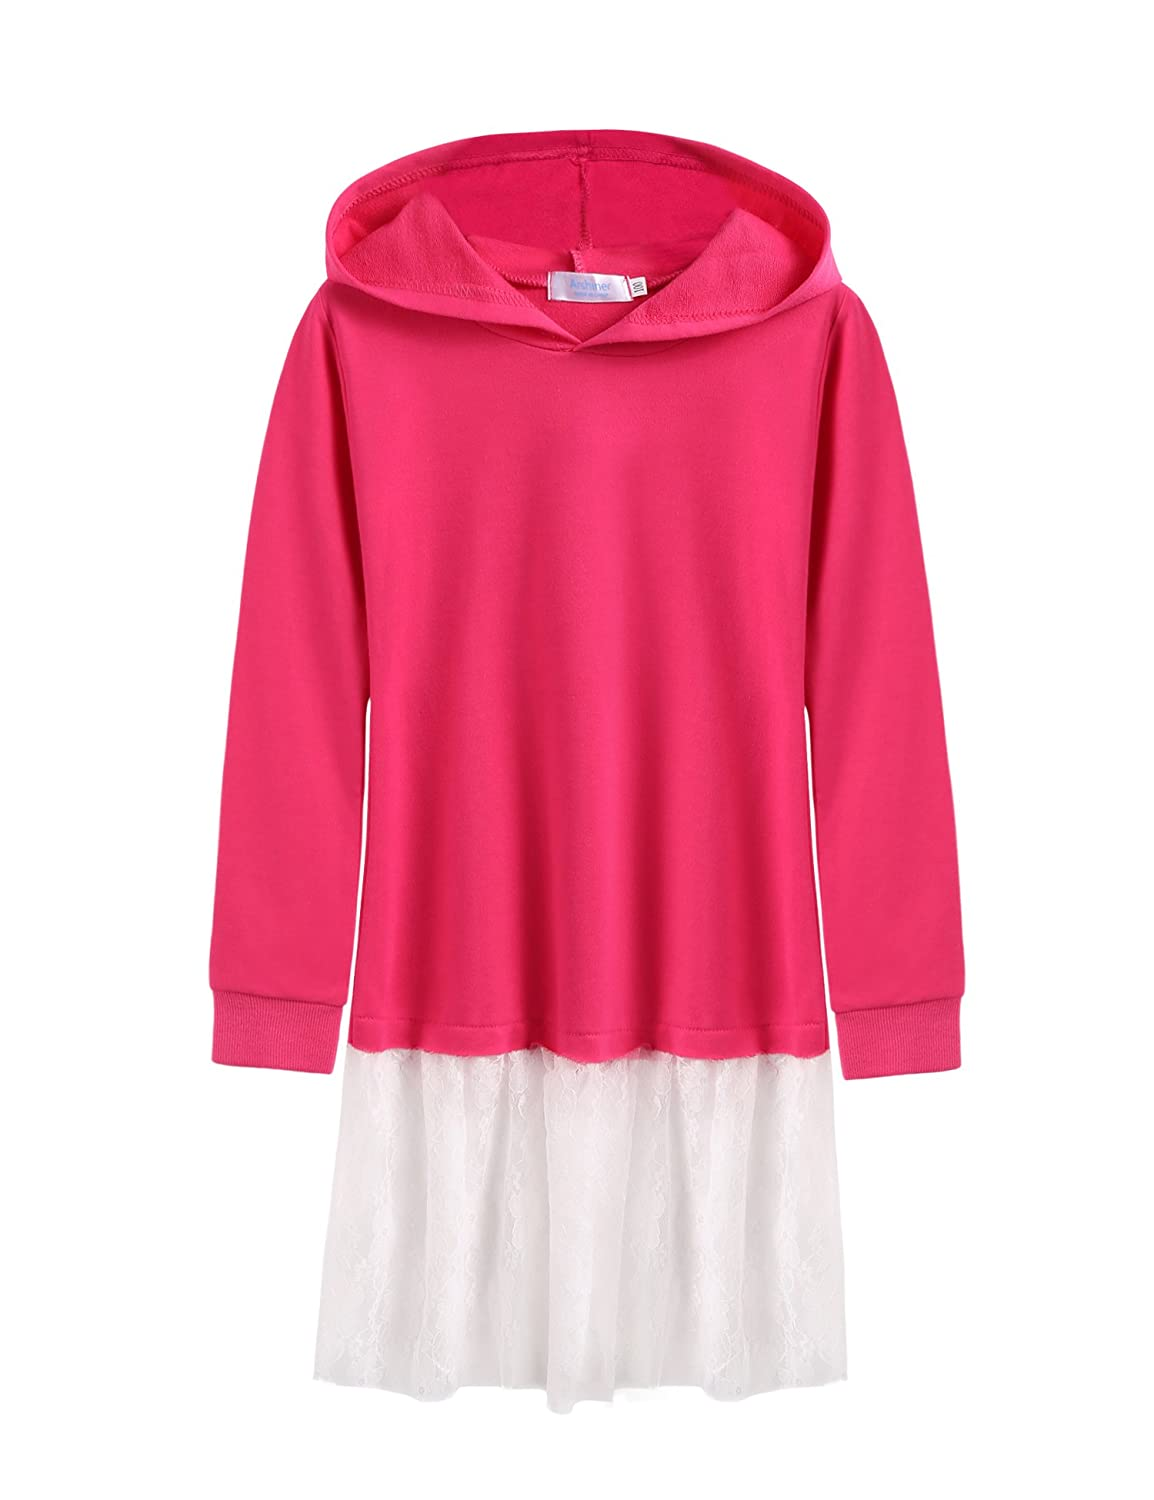 Arshiner Girl's Casual Long Sleeve Sweatshirts with Hoodie, Watermelon Red 110 ASS005236_WRE_110